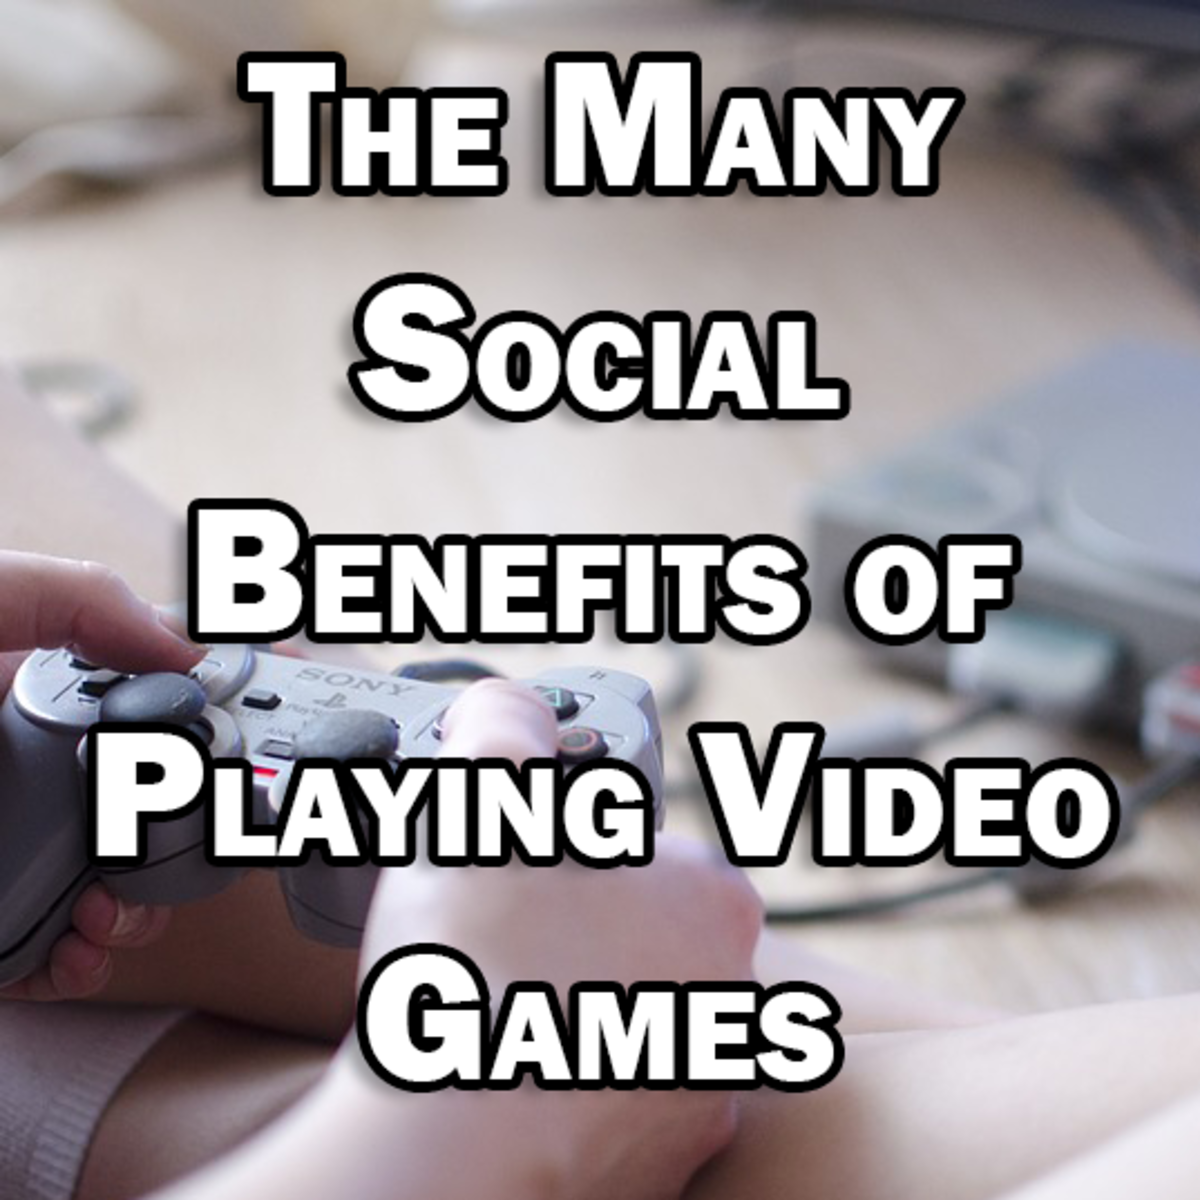 The Many Social Benefits of Playing Video Games | LevelSkip